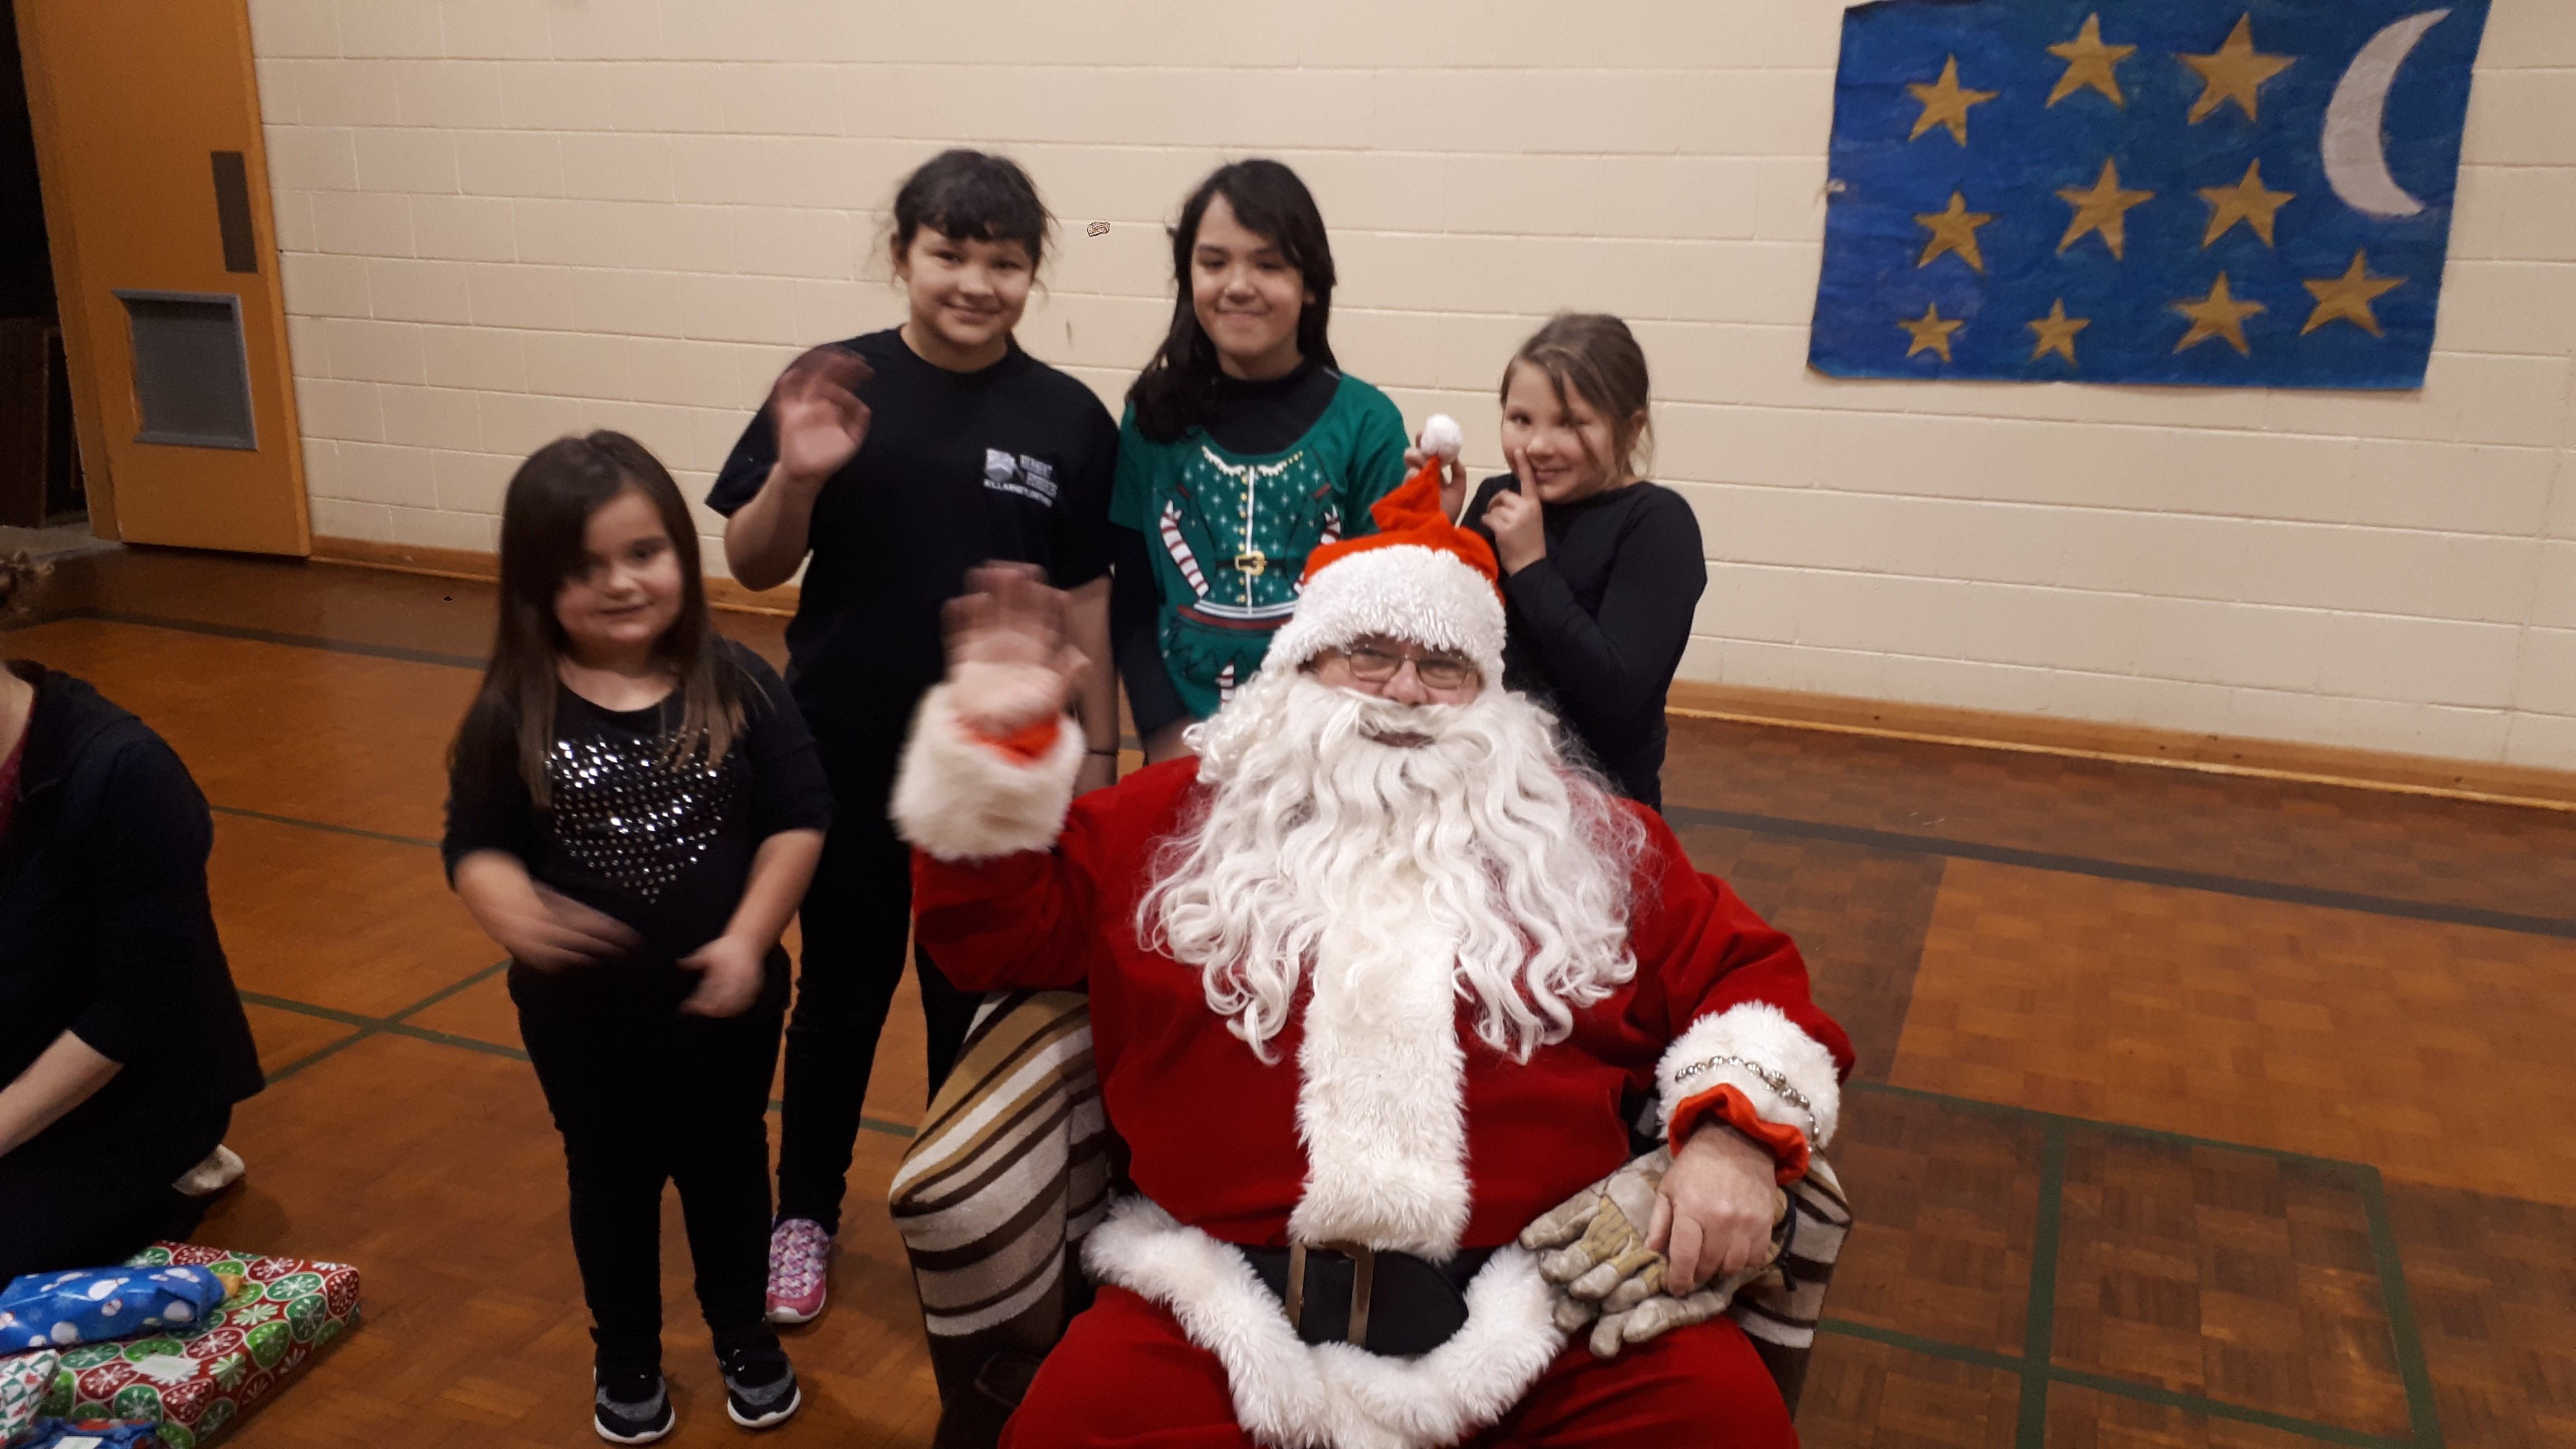 Students Jessica Pawson, Abby Beaucage, Channel Burant-Roque and Emily Beaucage pose with Santa